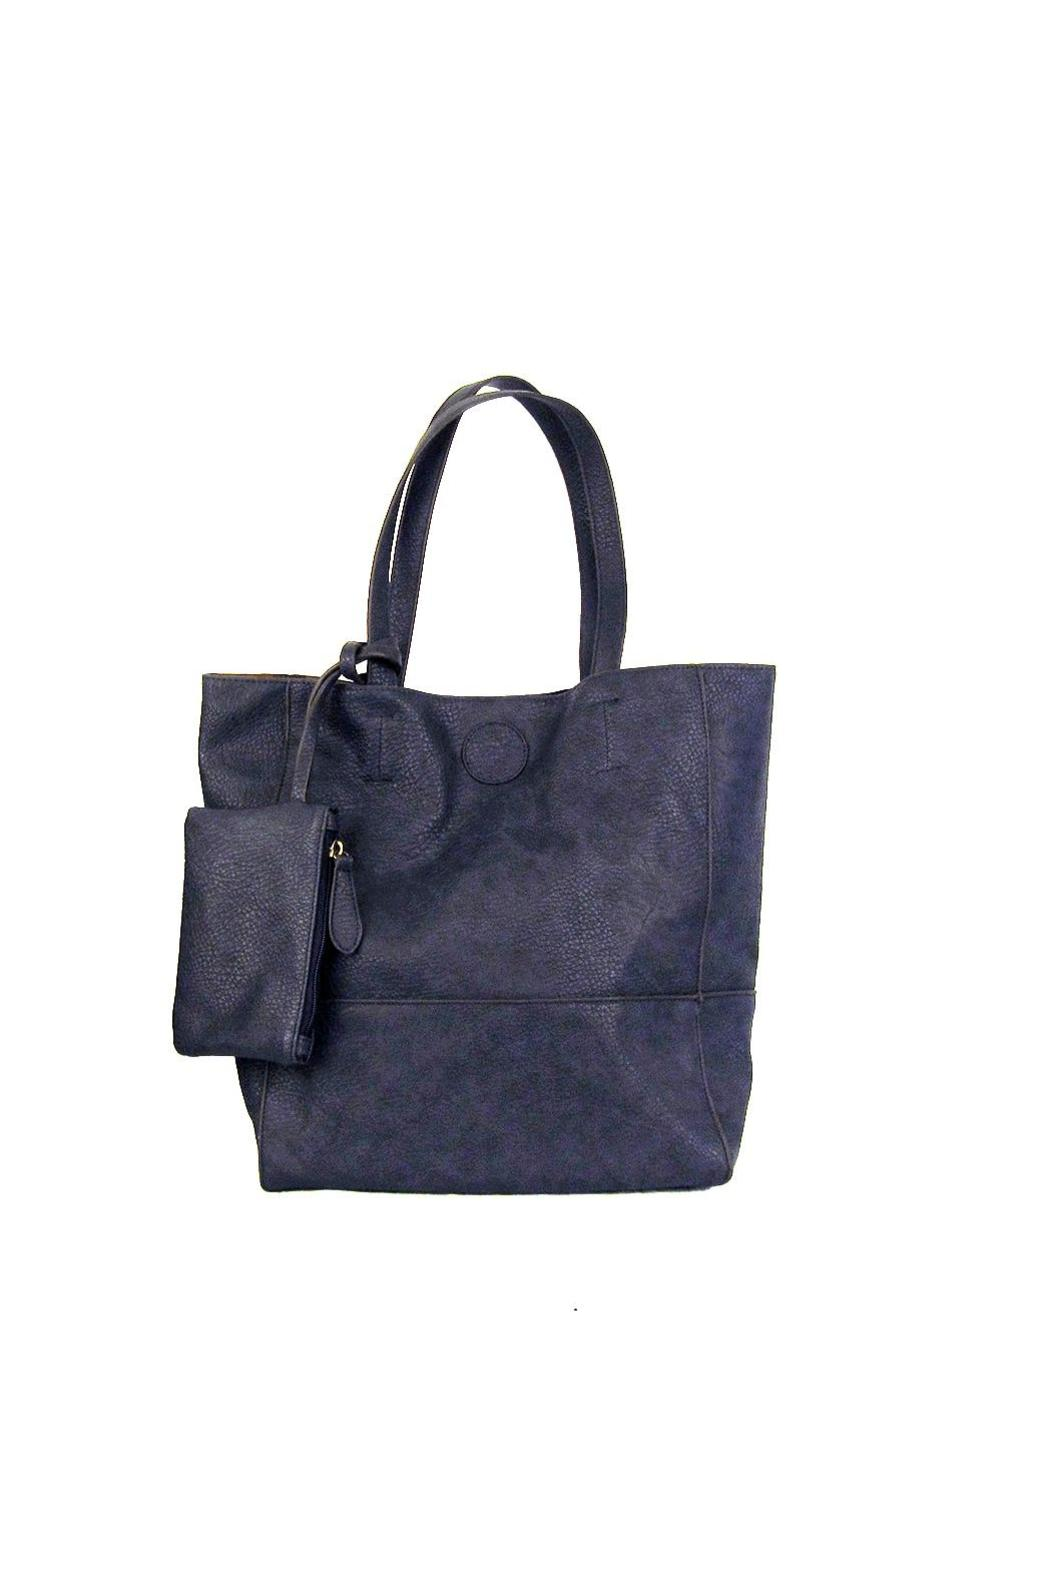 12975132479c Joy Accessories Faux Leather Tote from Wisconsin by Wilkins ...